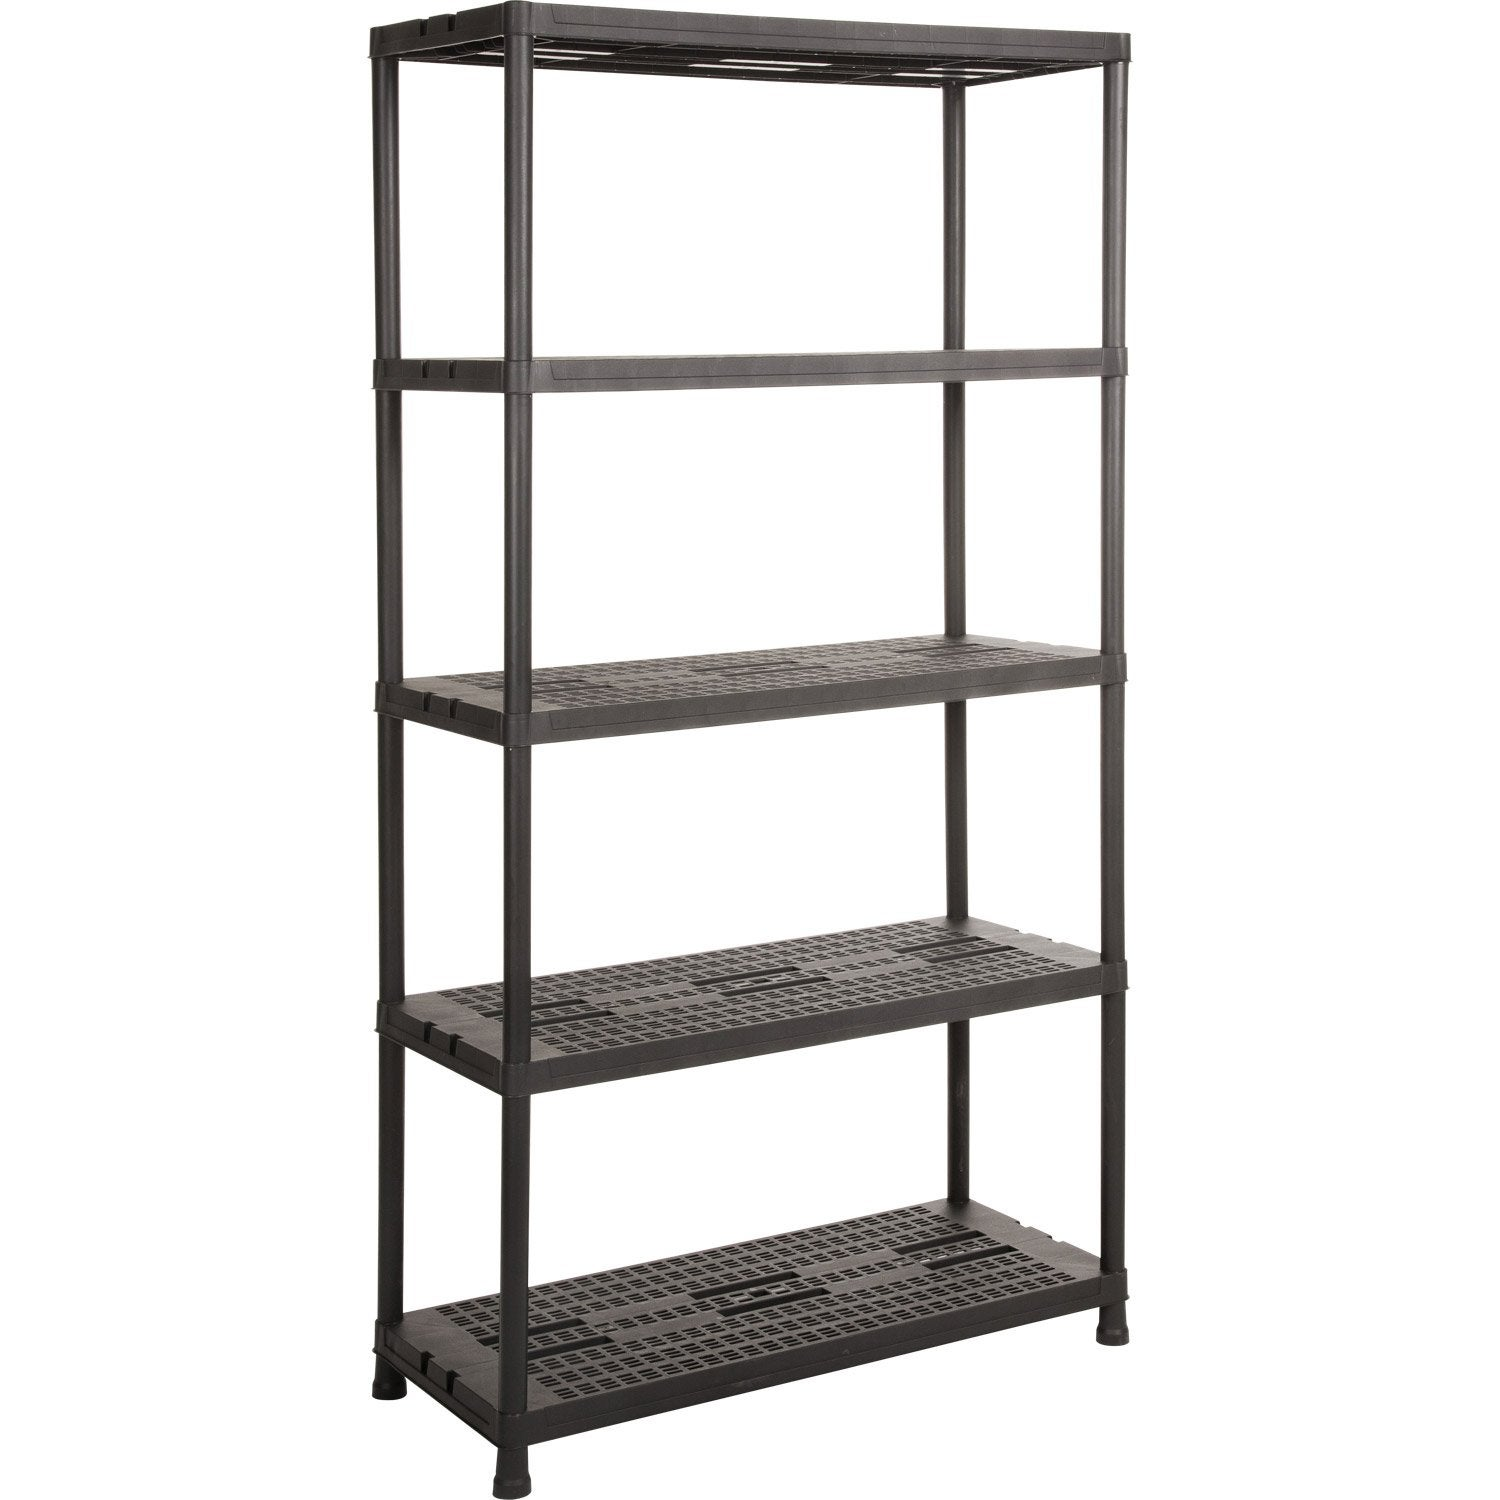 Etag re r sine 5 tablettes noir l90xh180xp40 cm leroy merlin - Etagere garage leroy merlin ...